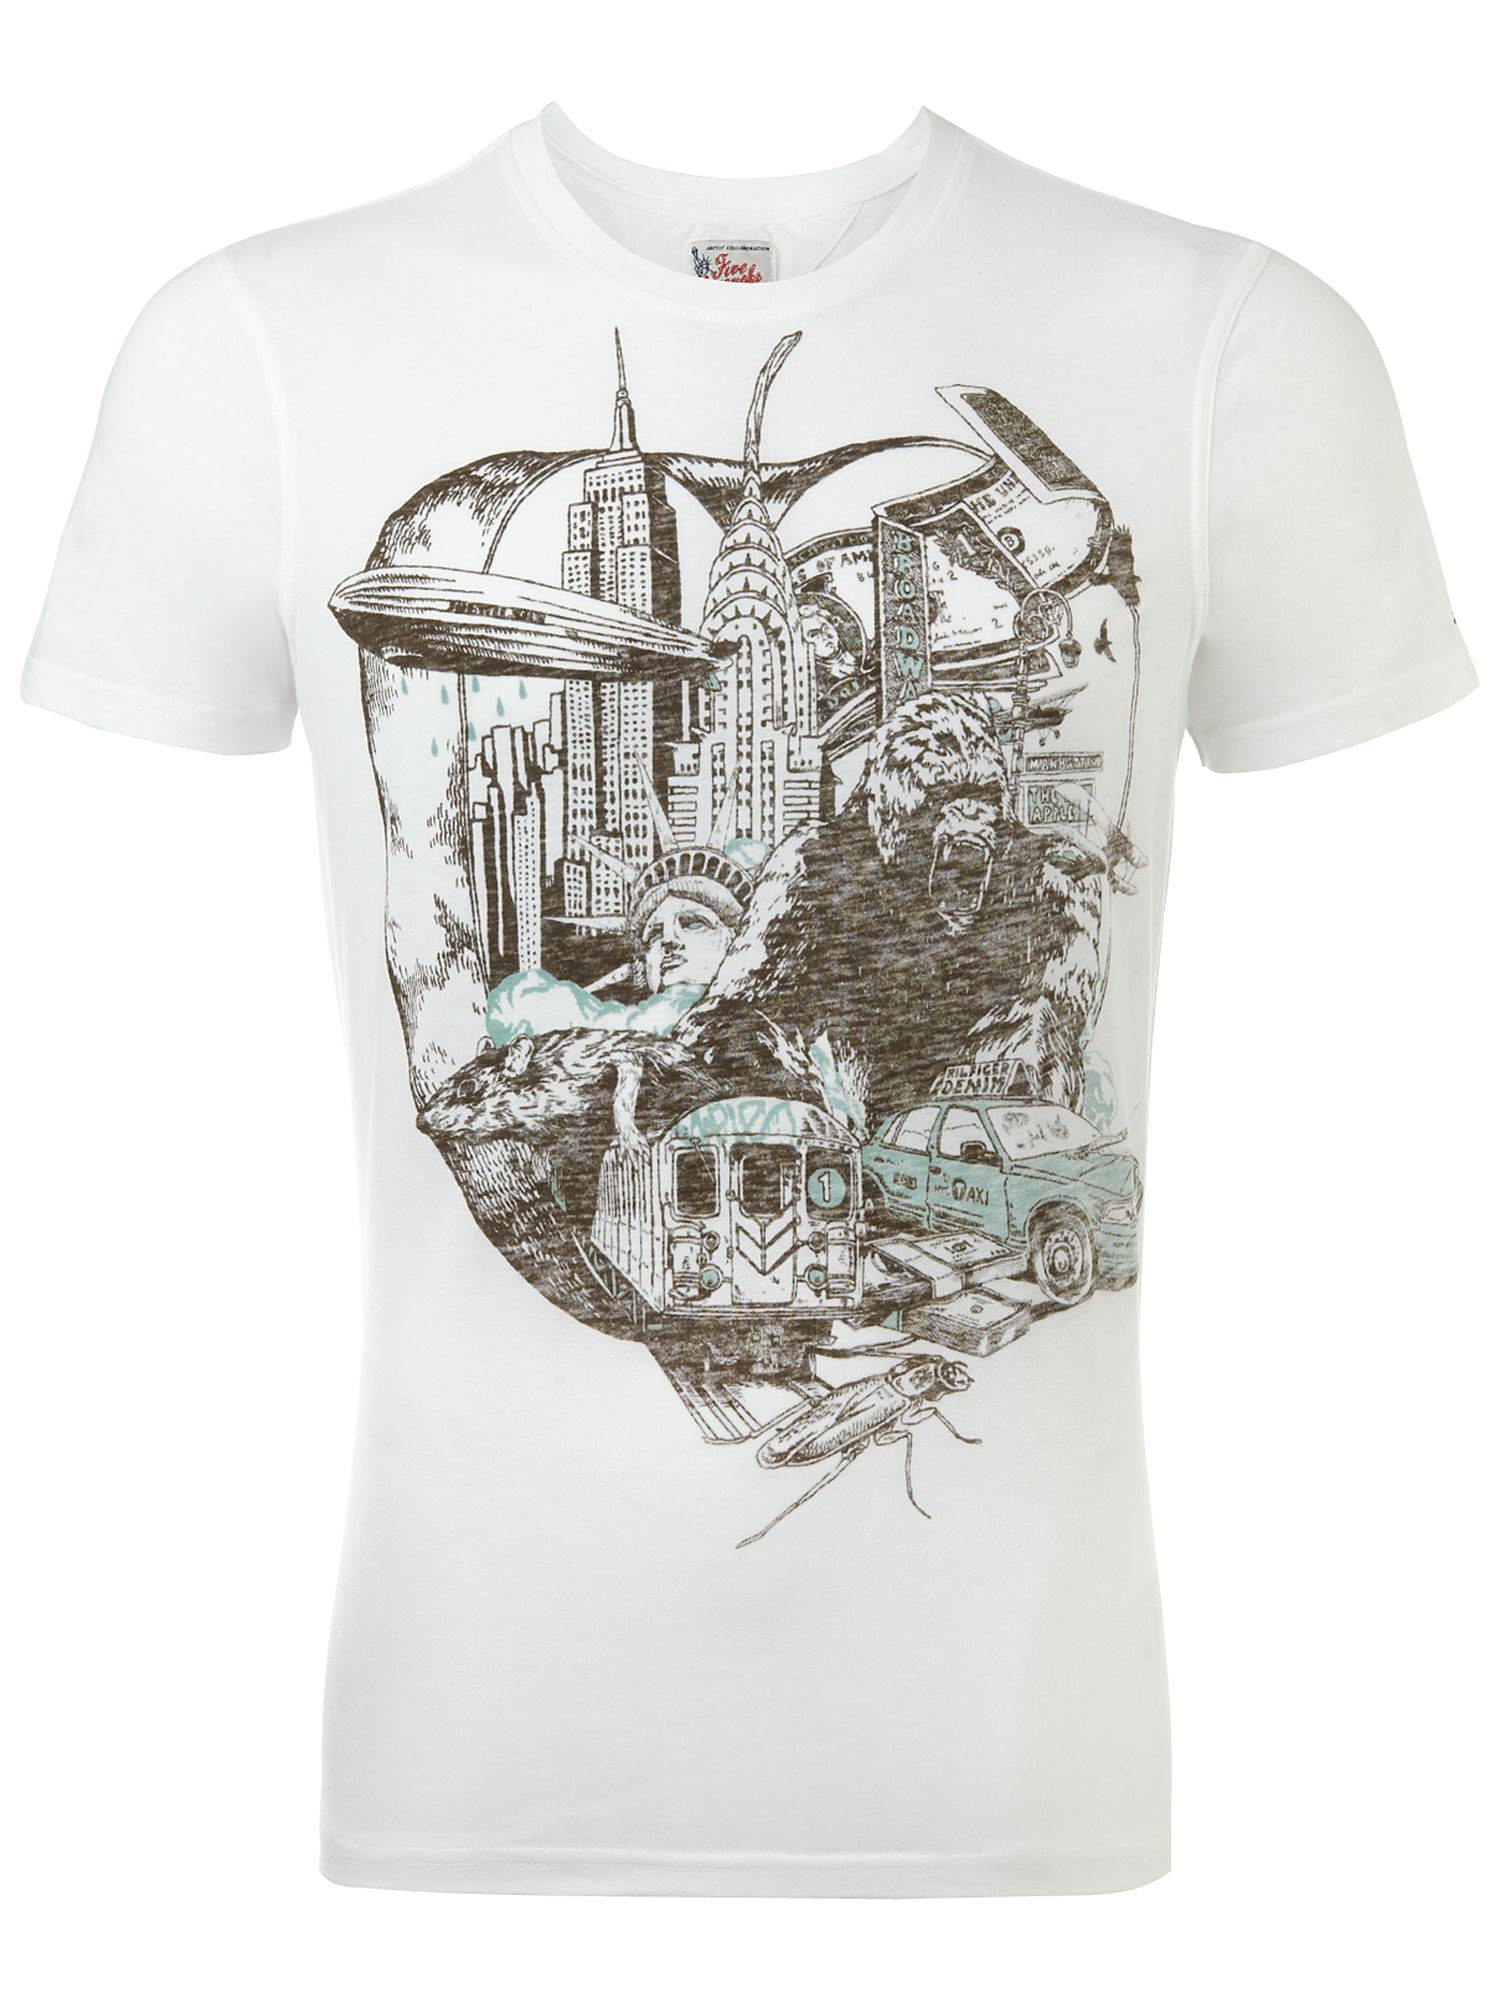 Tommy Hilfiger Manhattan crew neck T-shirt White product image